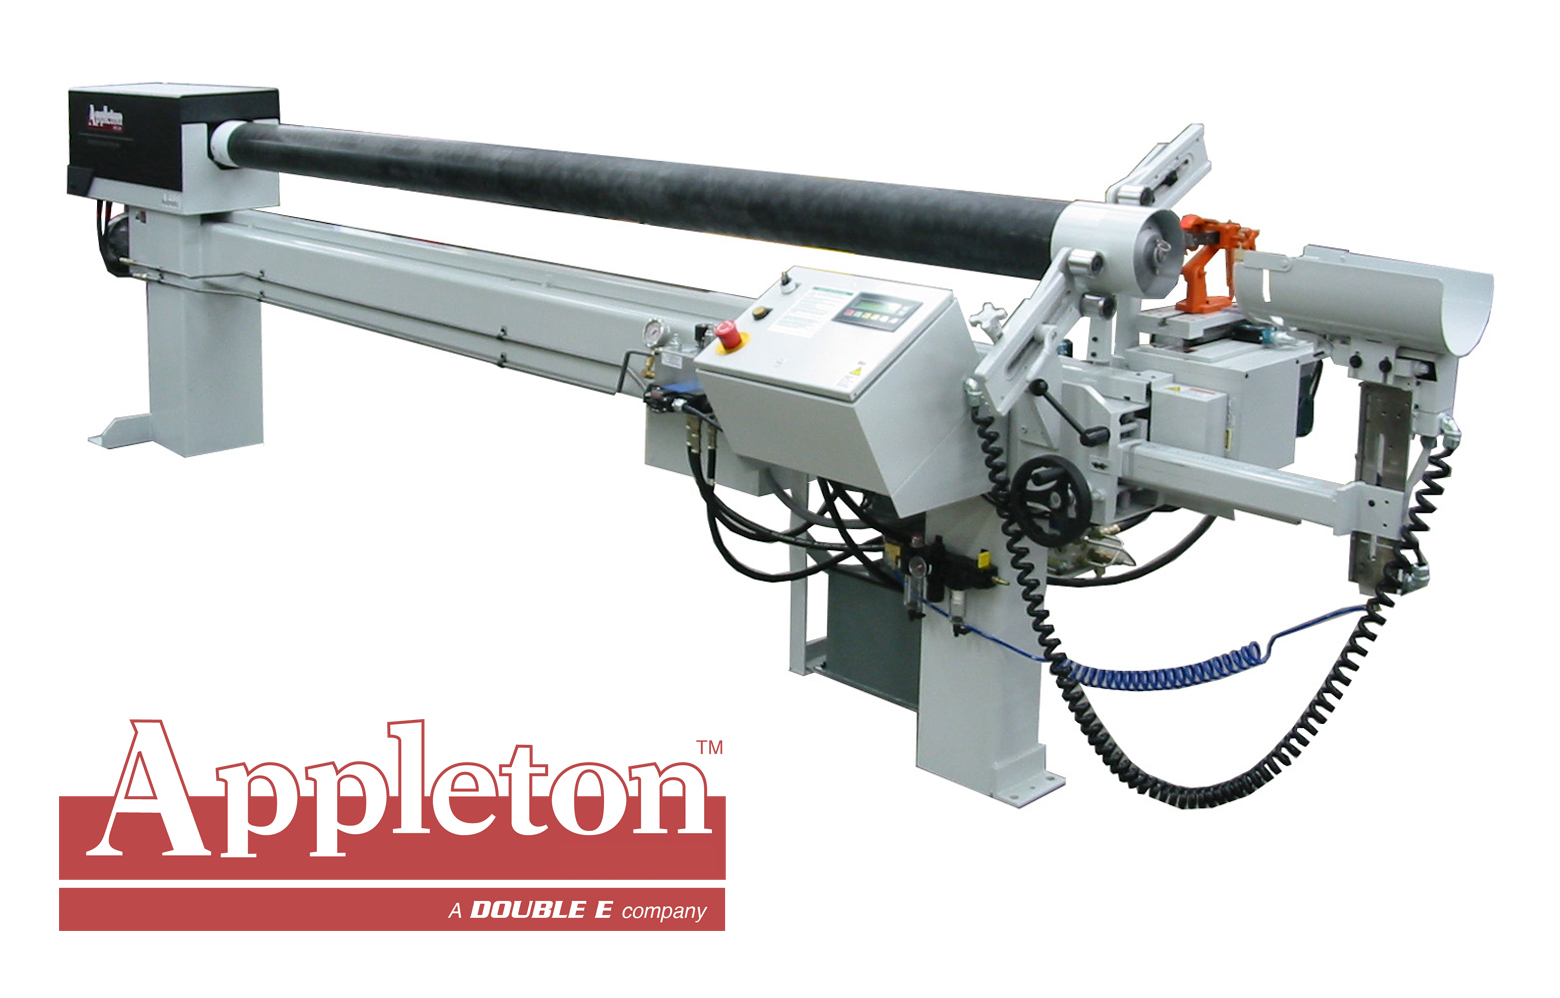 Appleton A400 Automatic Core Cutter